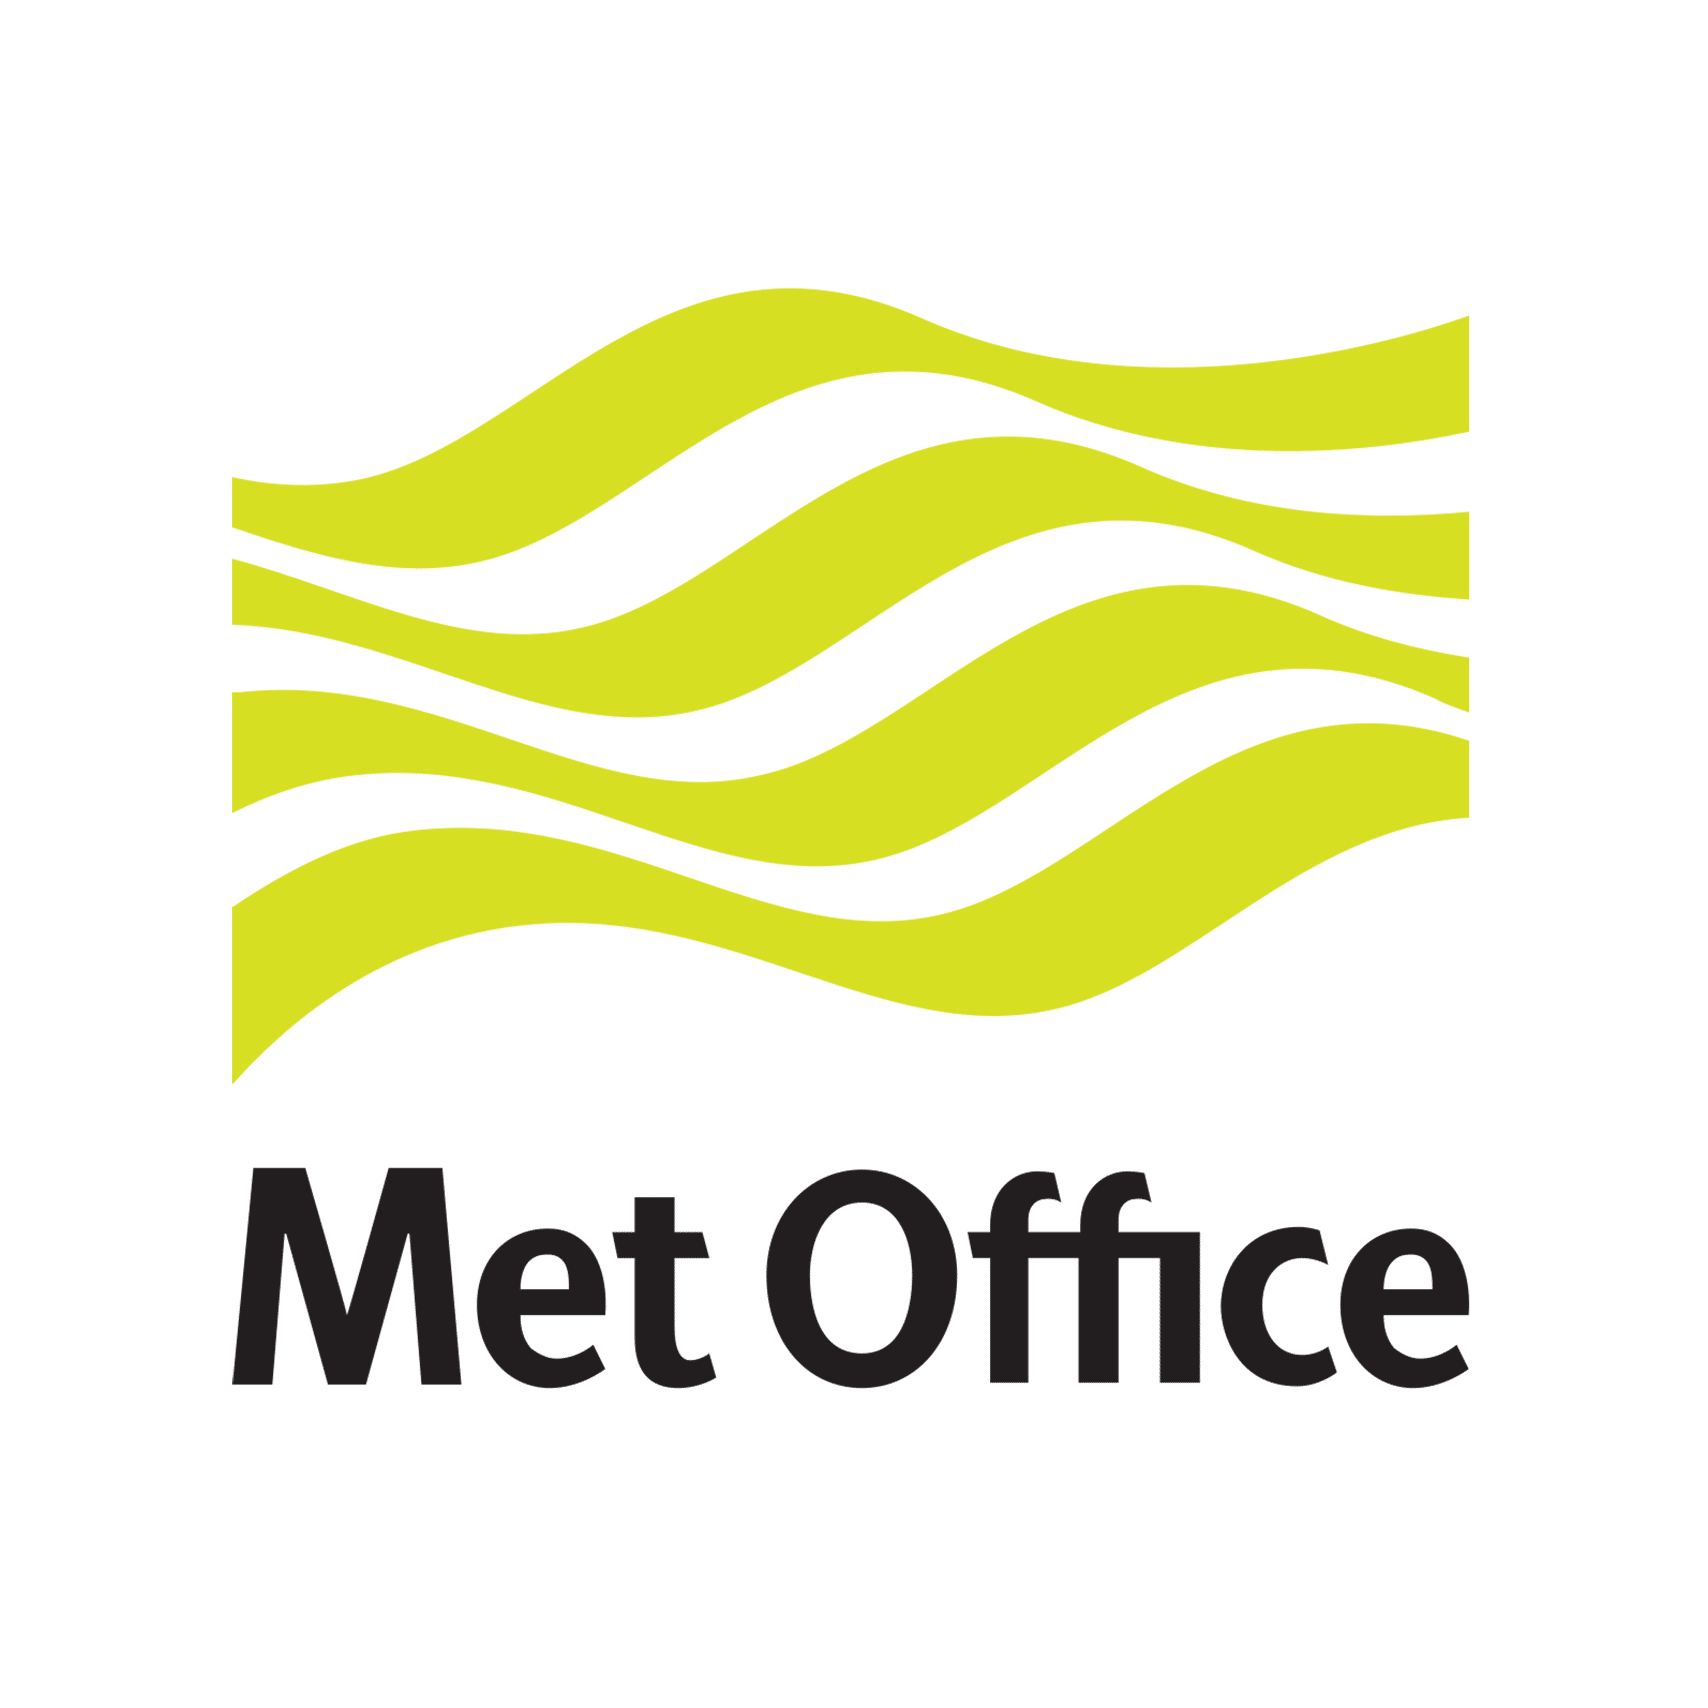 Partnering with the Met Office for location-based weather alerts across the UK.